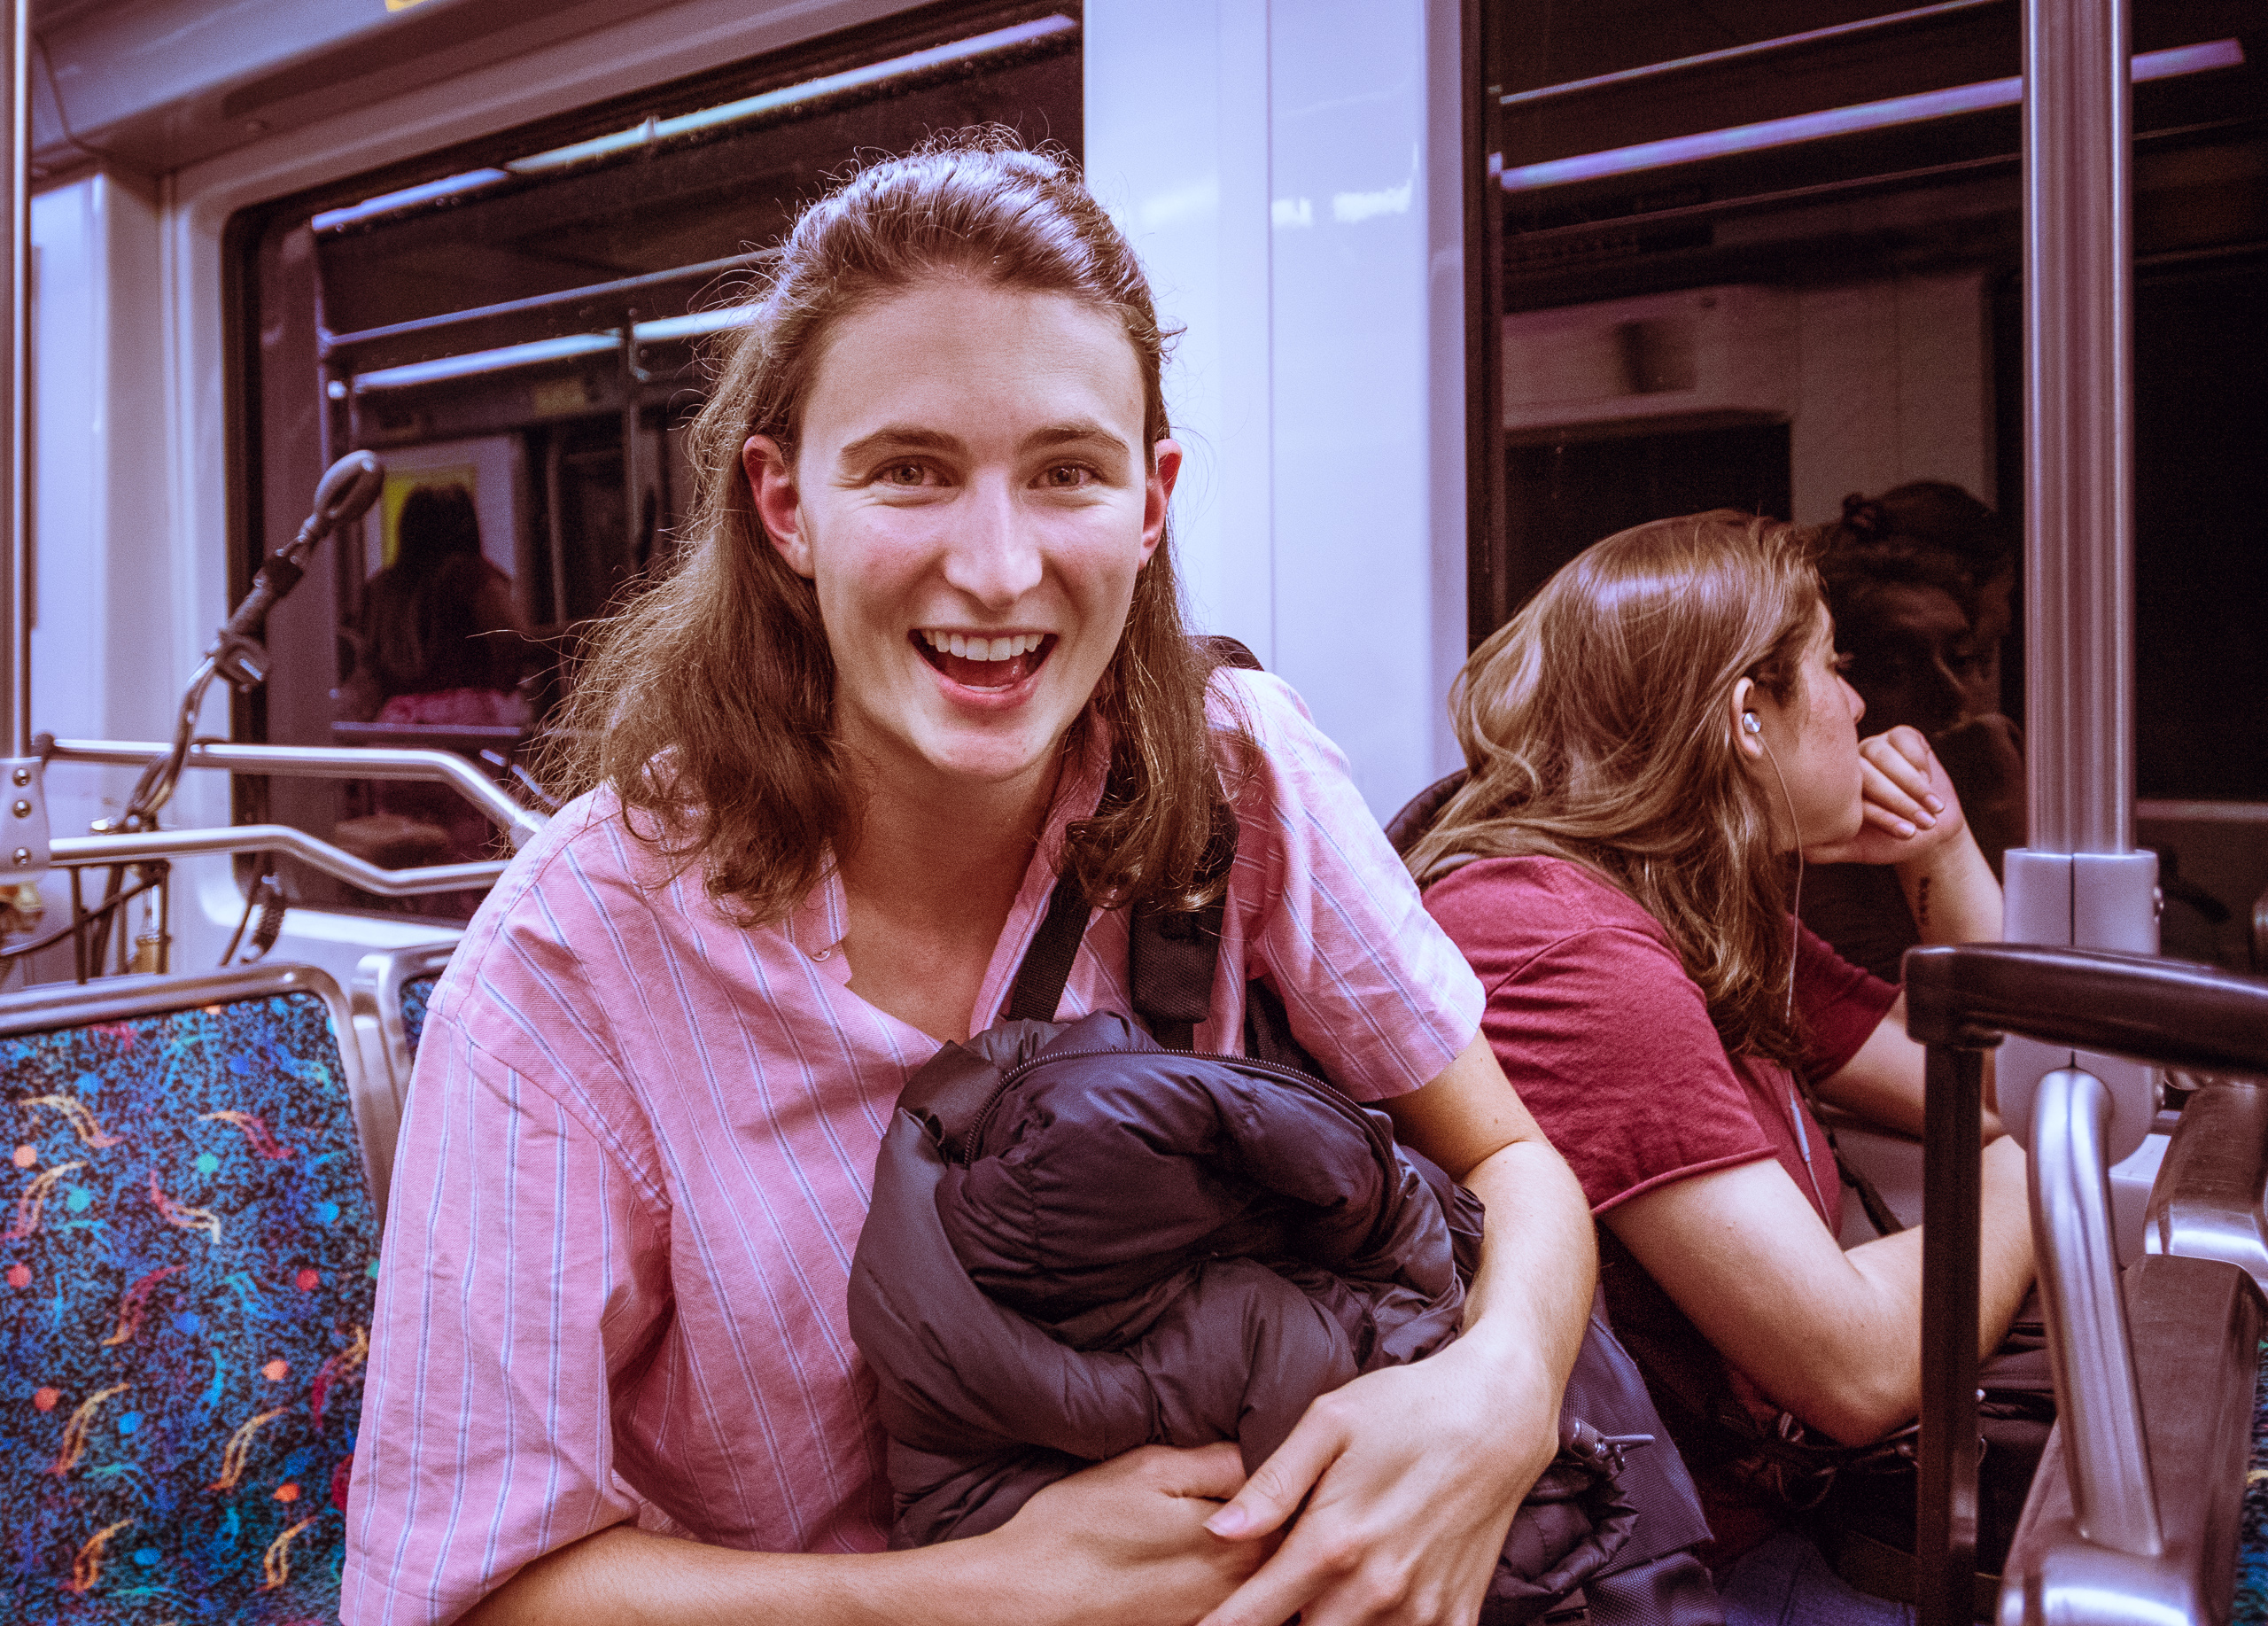 Tessa Forde smiles with her modest luggage in tow as she rides the LA Metro Gold Line home from an 8-day trip to Costa Rica